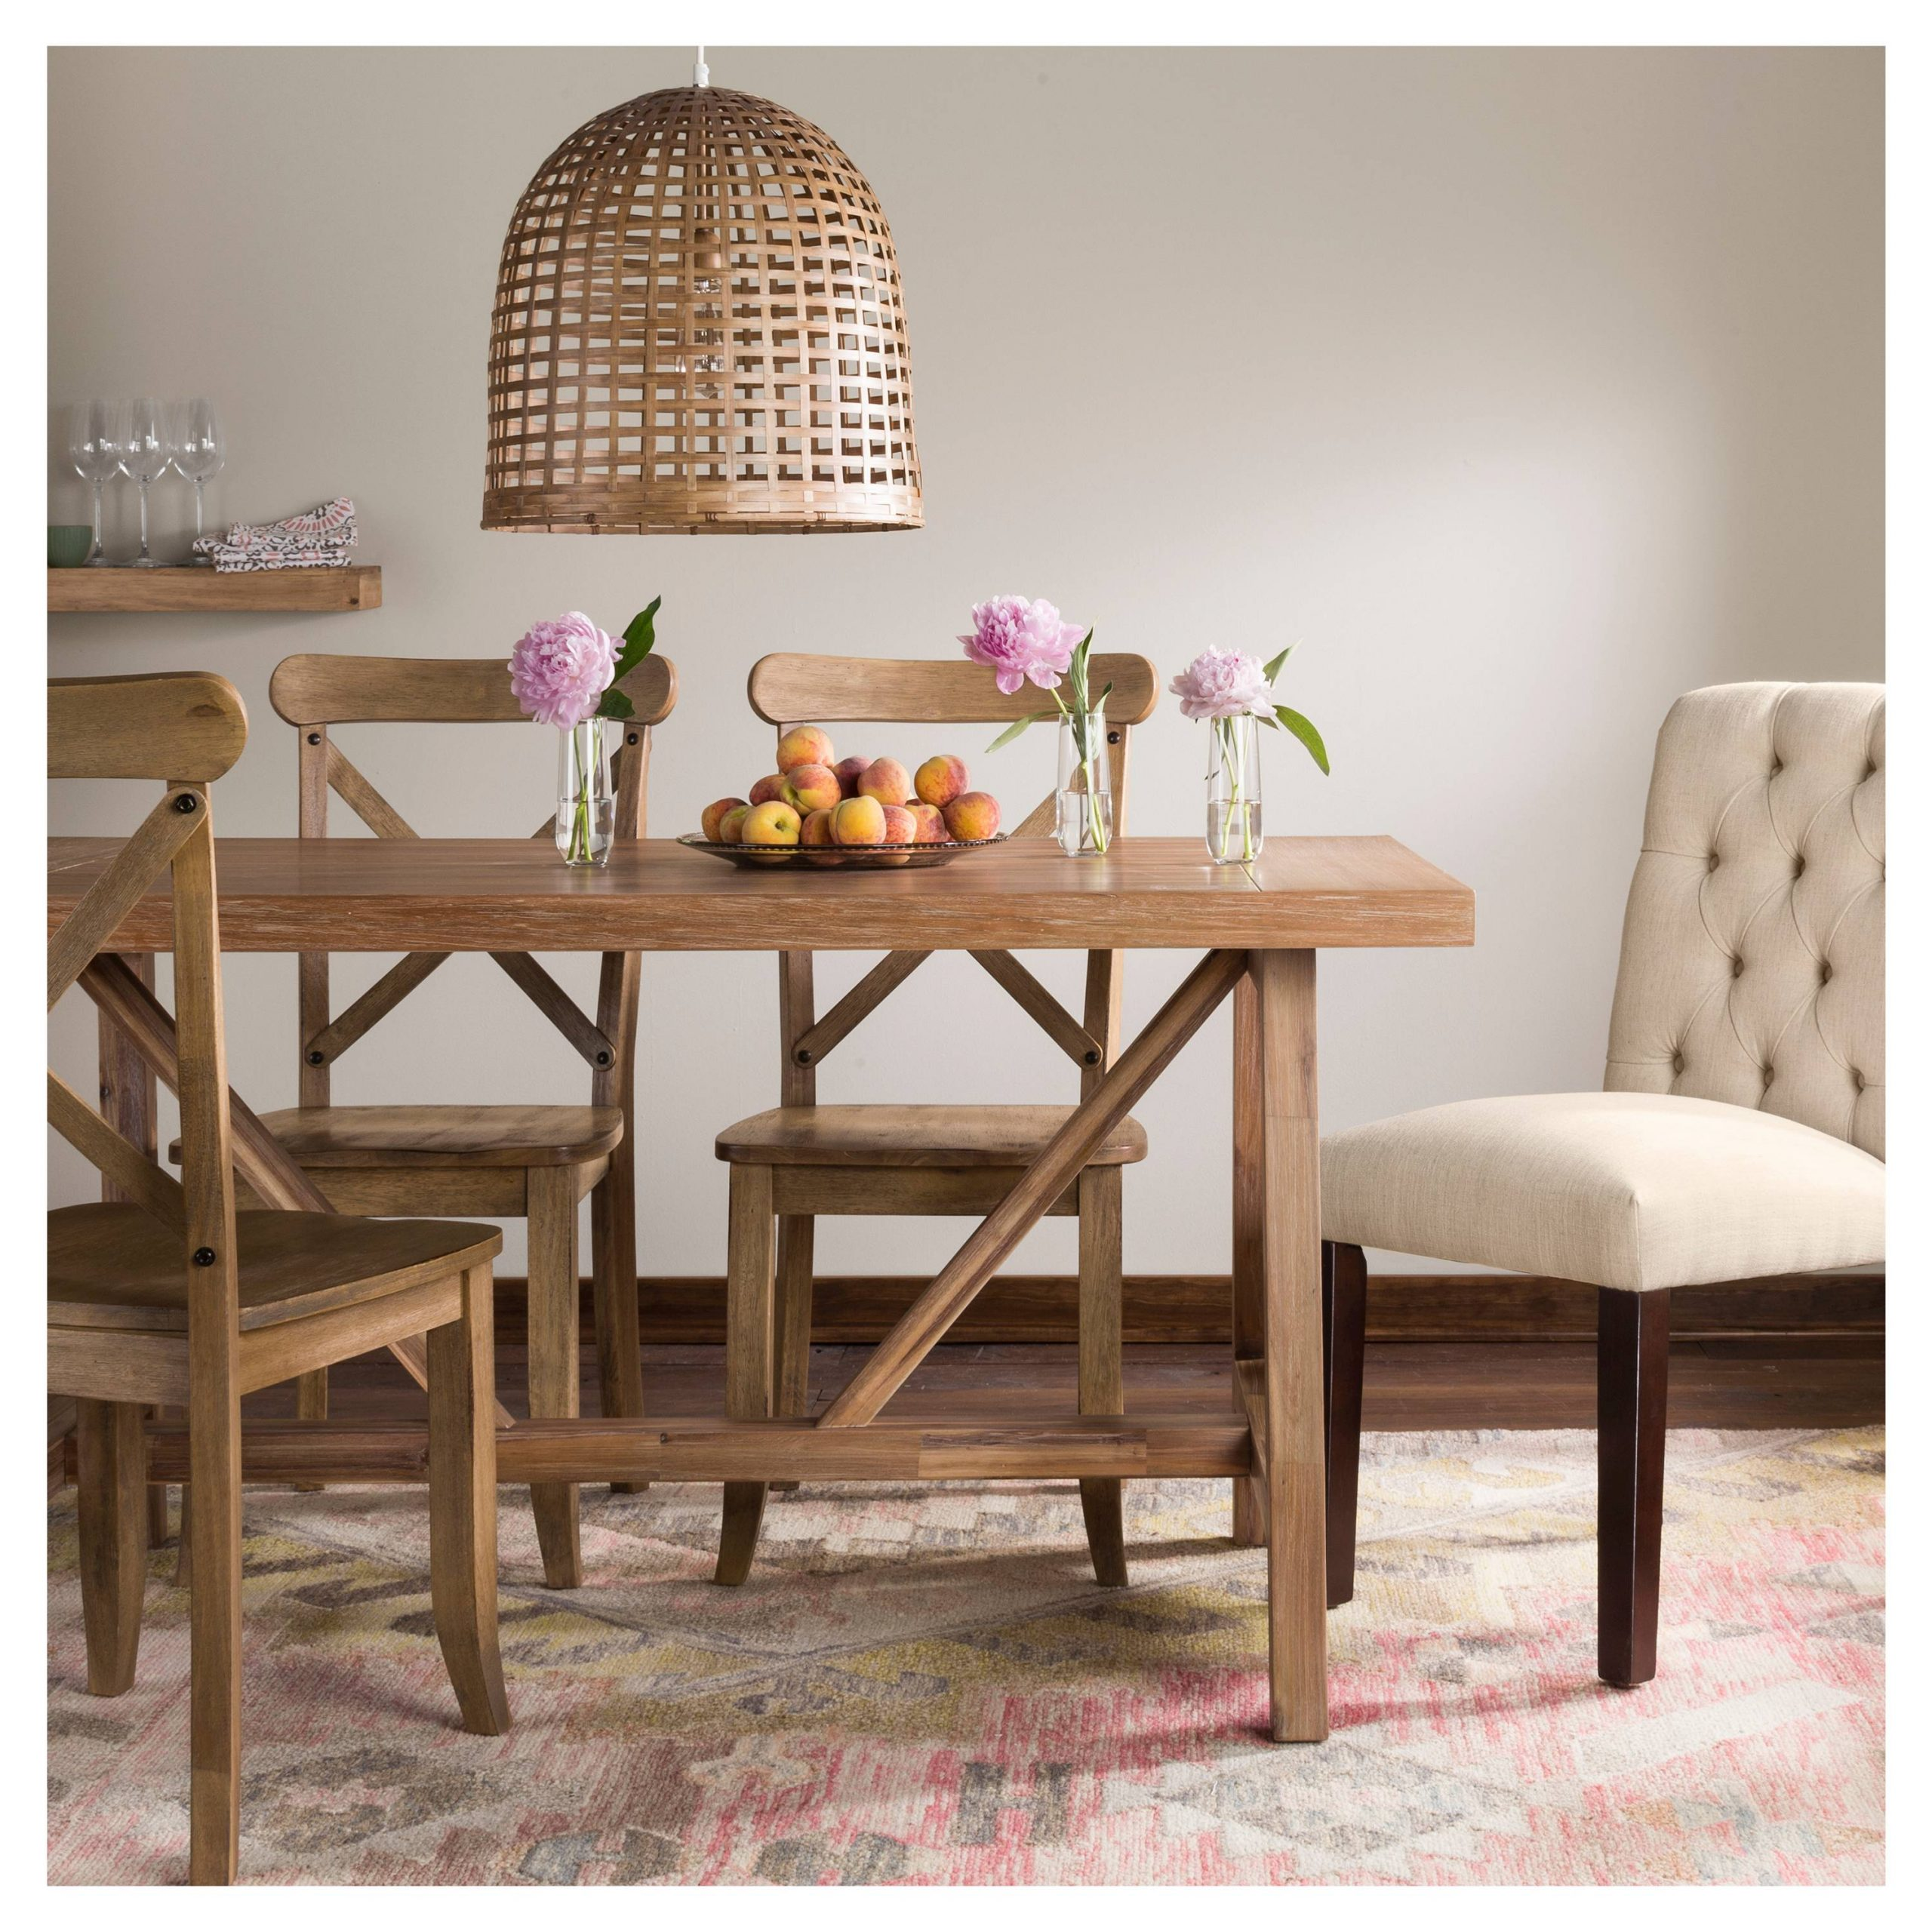 High Or Low // Farmhouse Table Sets - My 100 Year Old Home pertaining to 2019 Seadrift Toscana Dining Tables